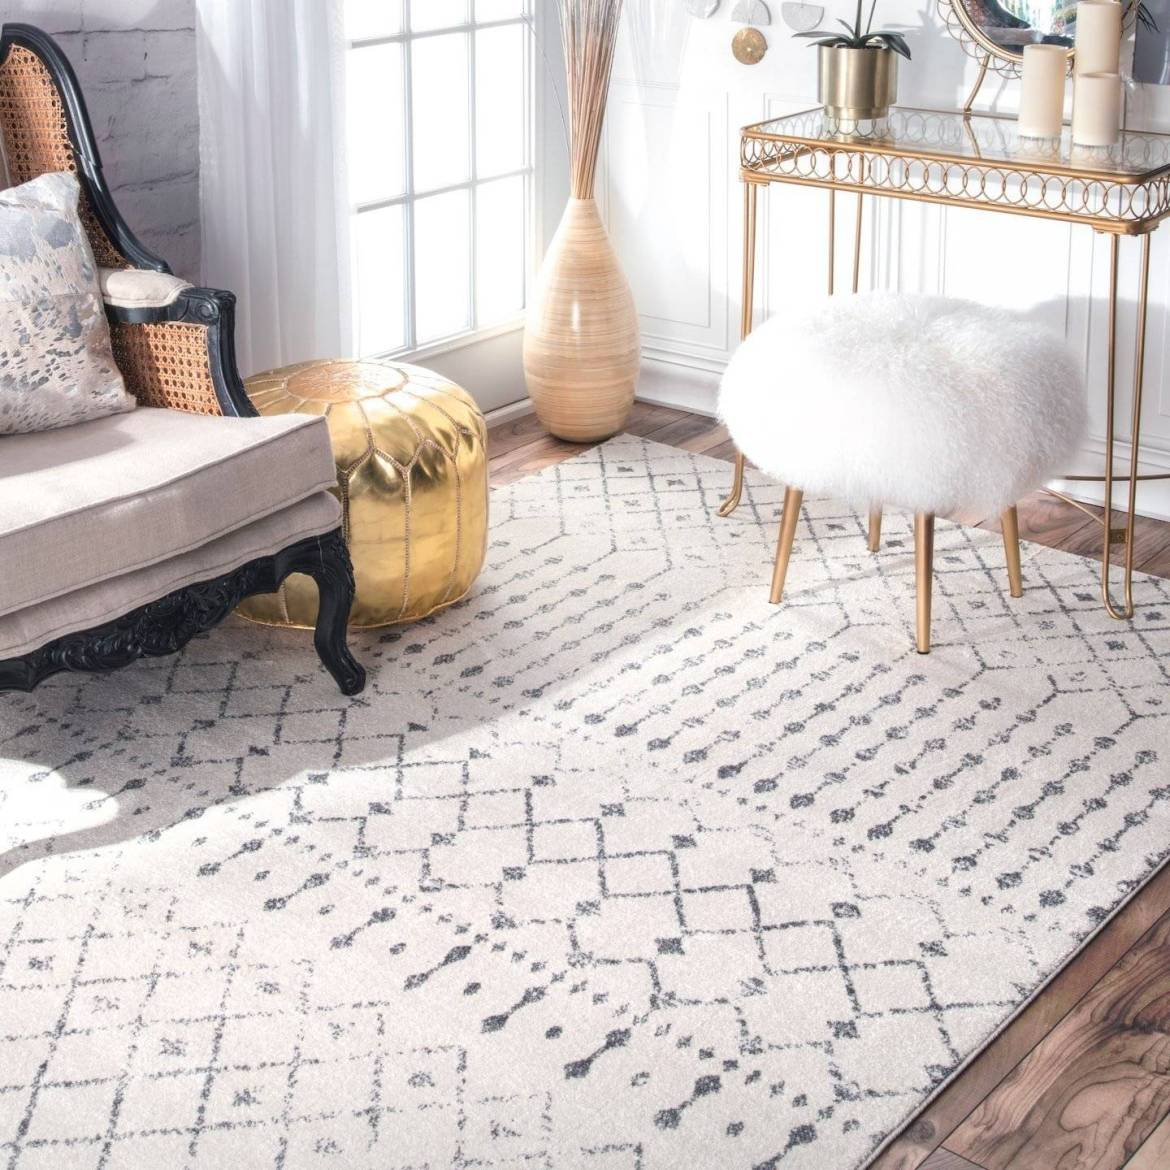 Shopping Guide: 25 Affordable Large Area Rugs You'll Actually Like